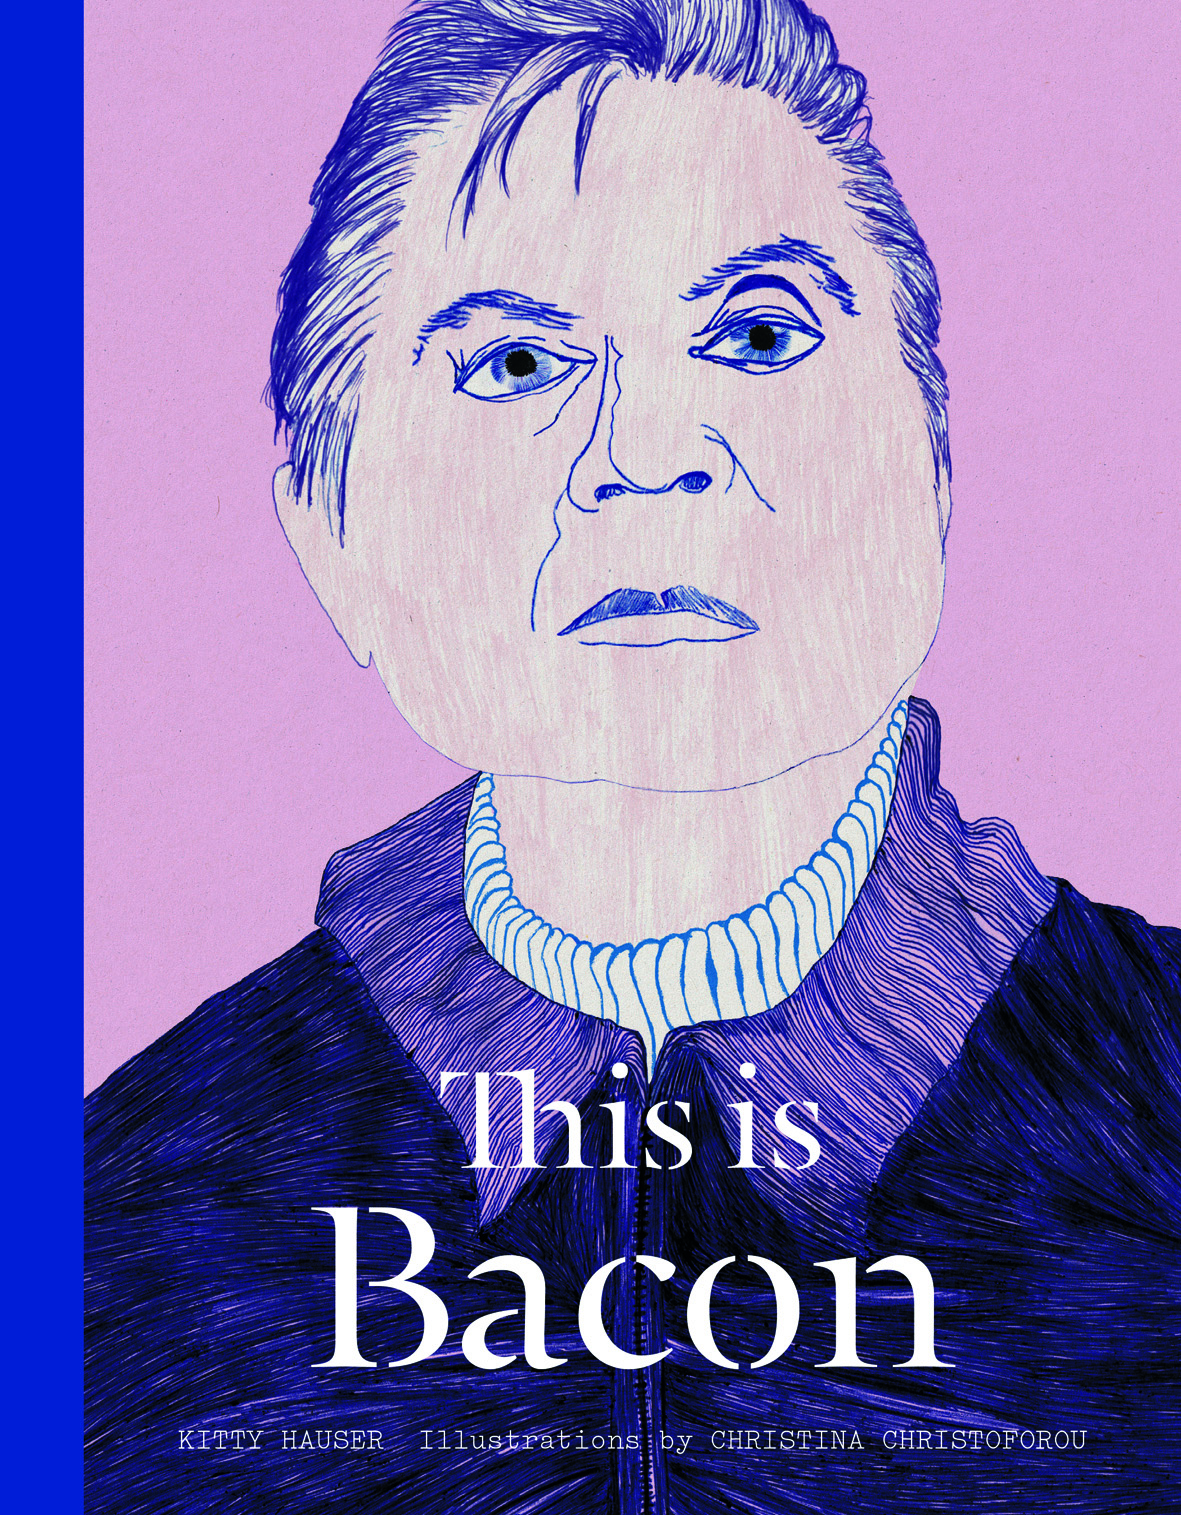 This is Series – New in – Bacon and Gauguin